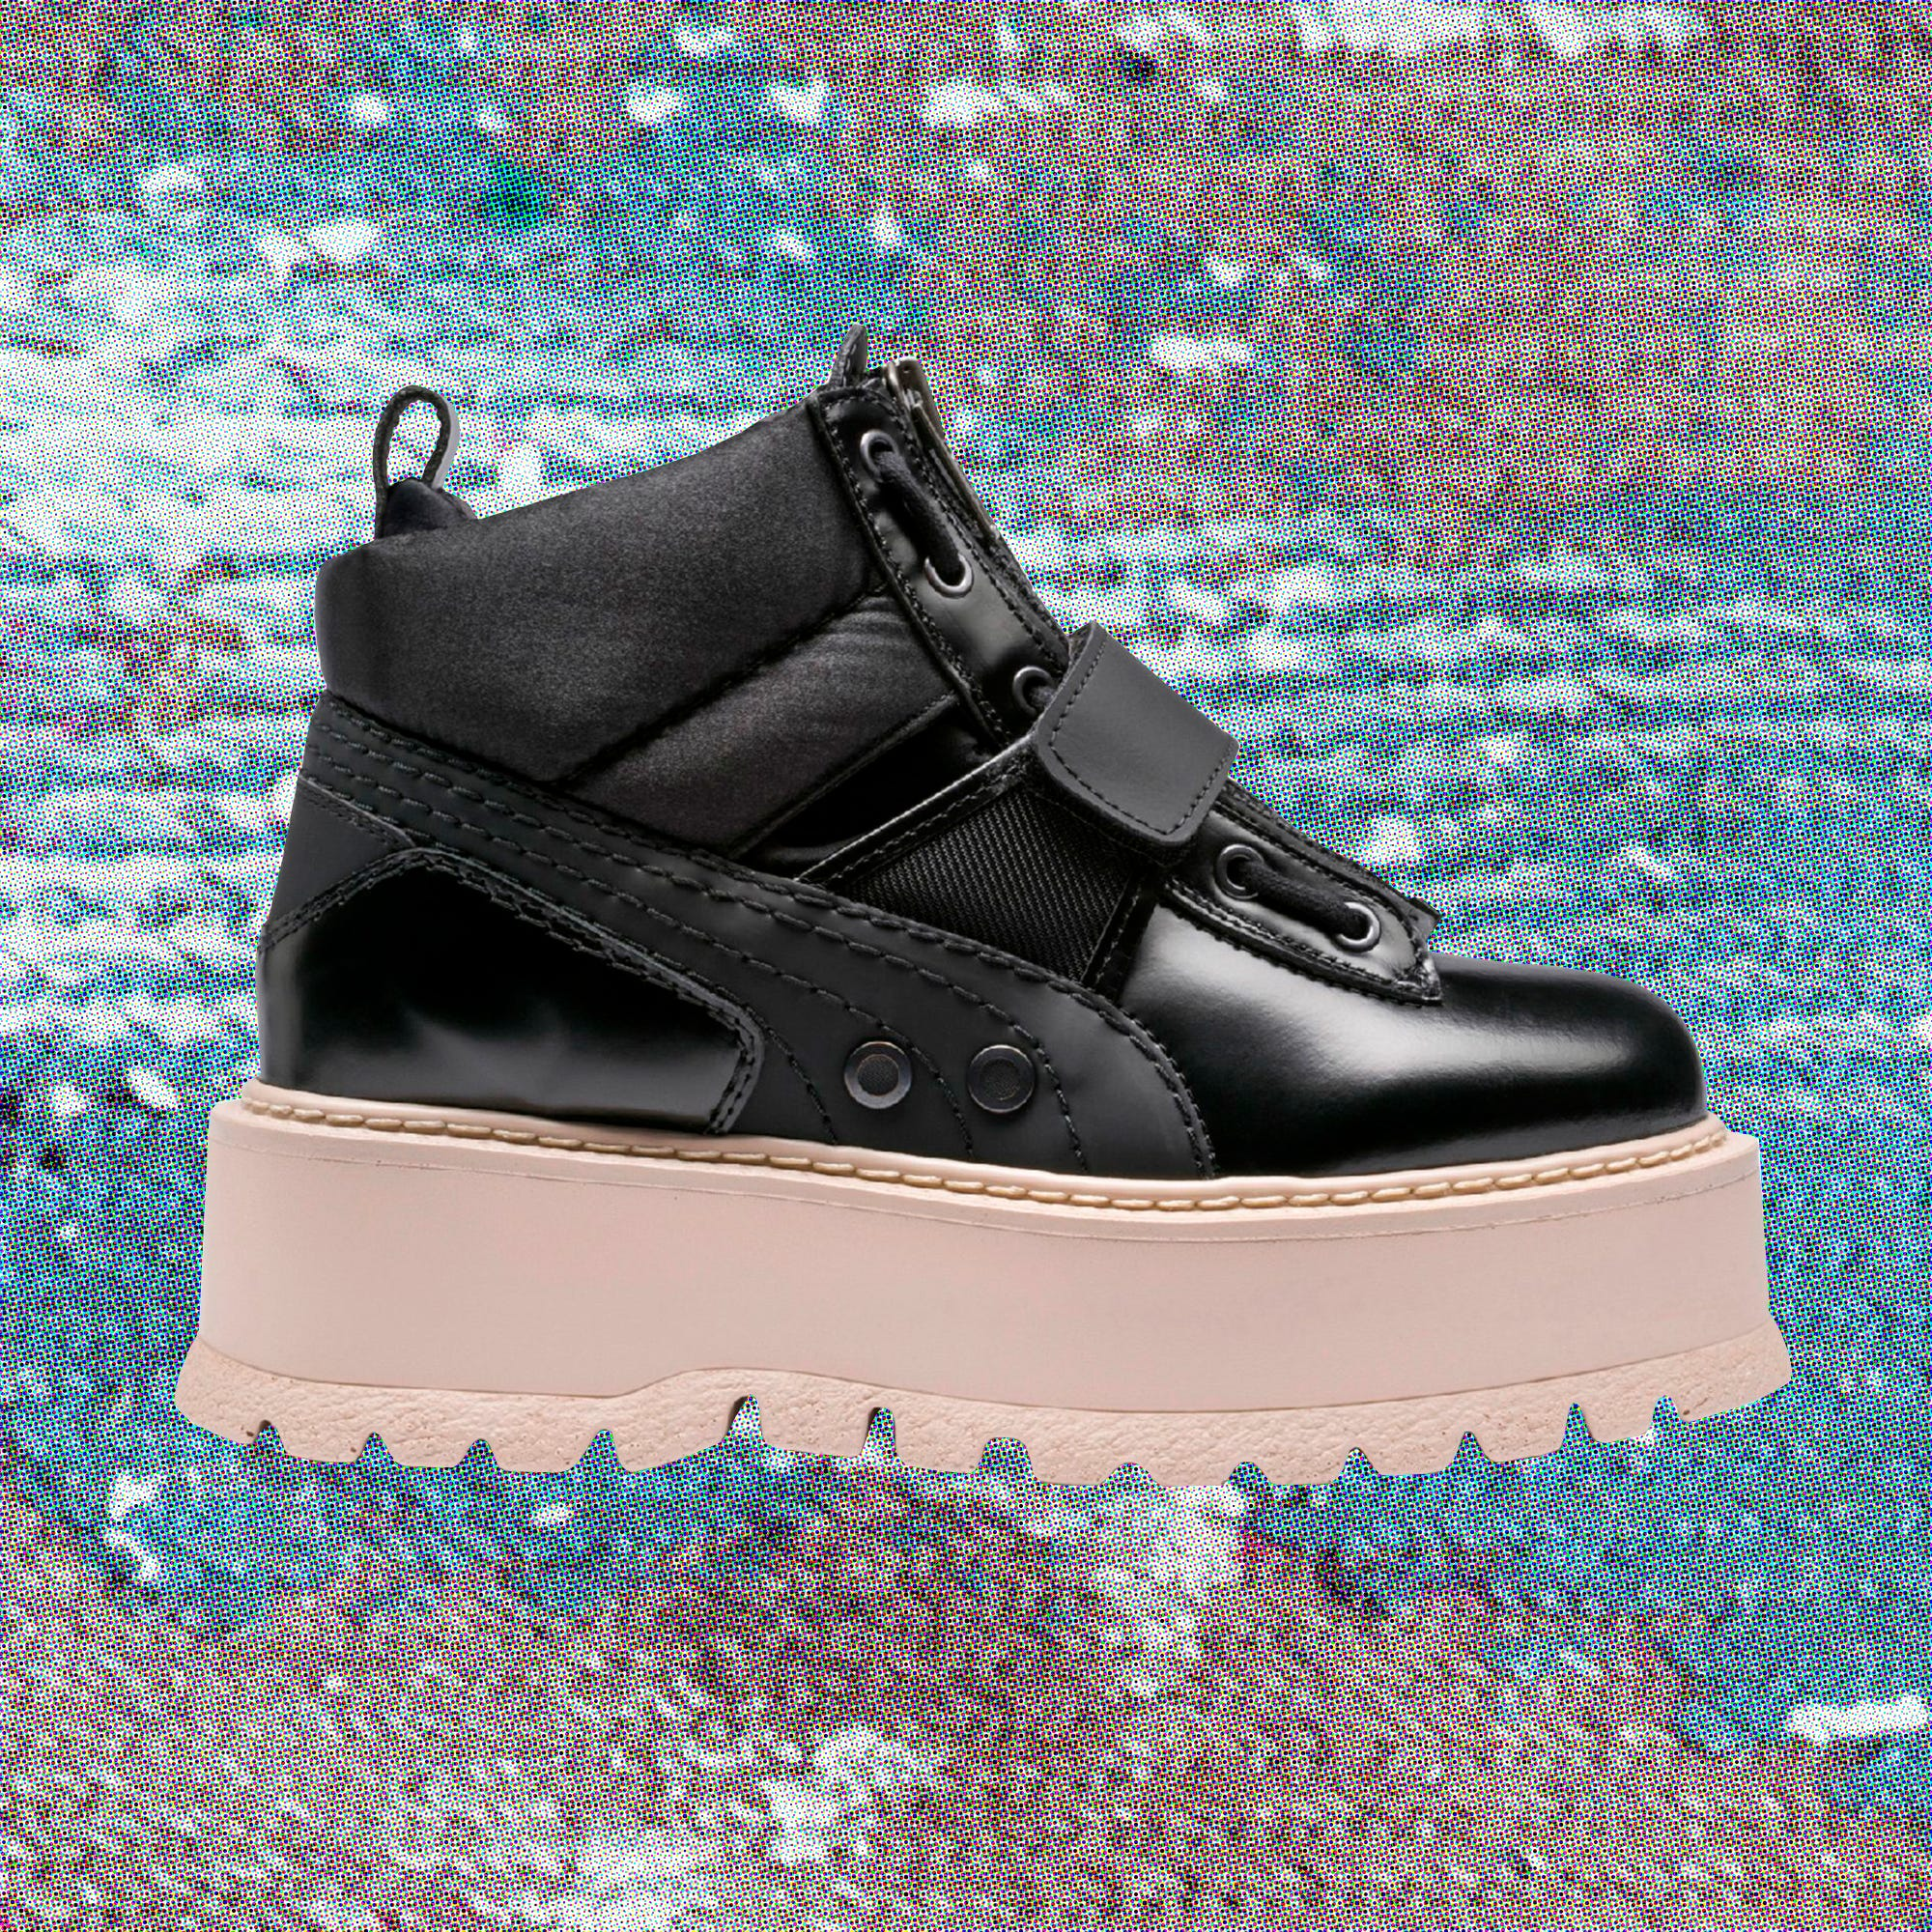 and casual cloud comforter dress a on comfortable walking s shop for boot berkley black men boots